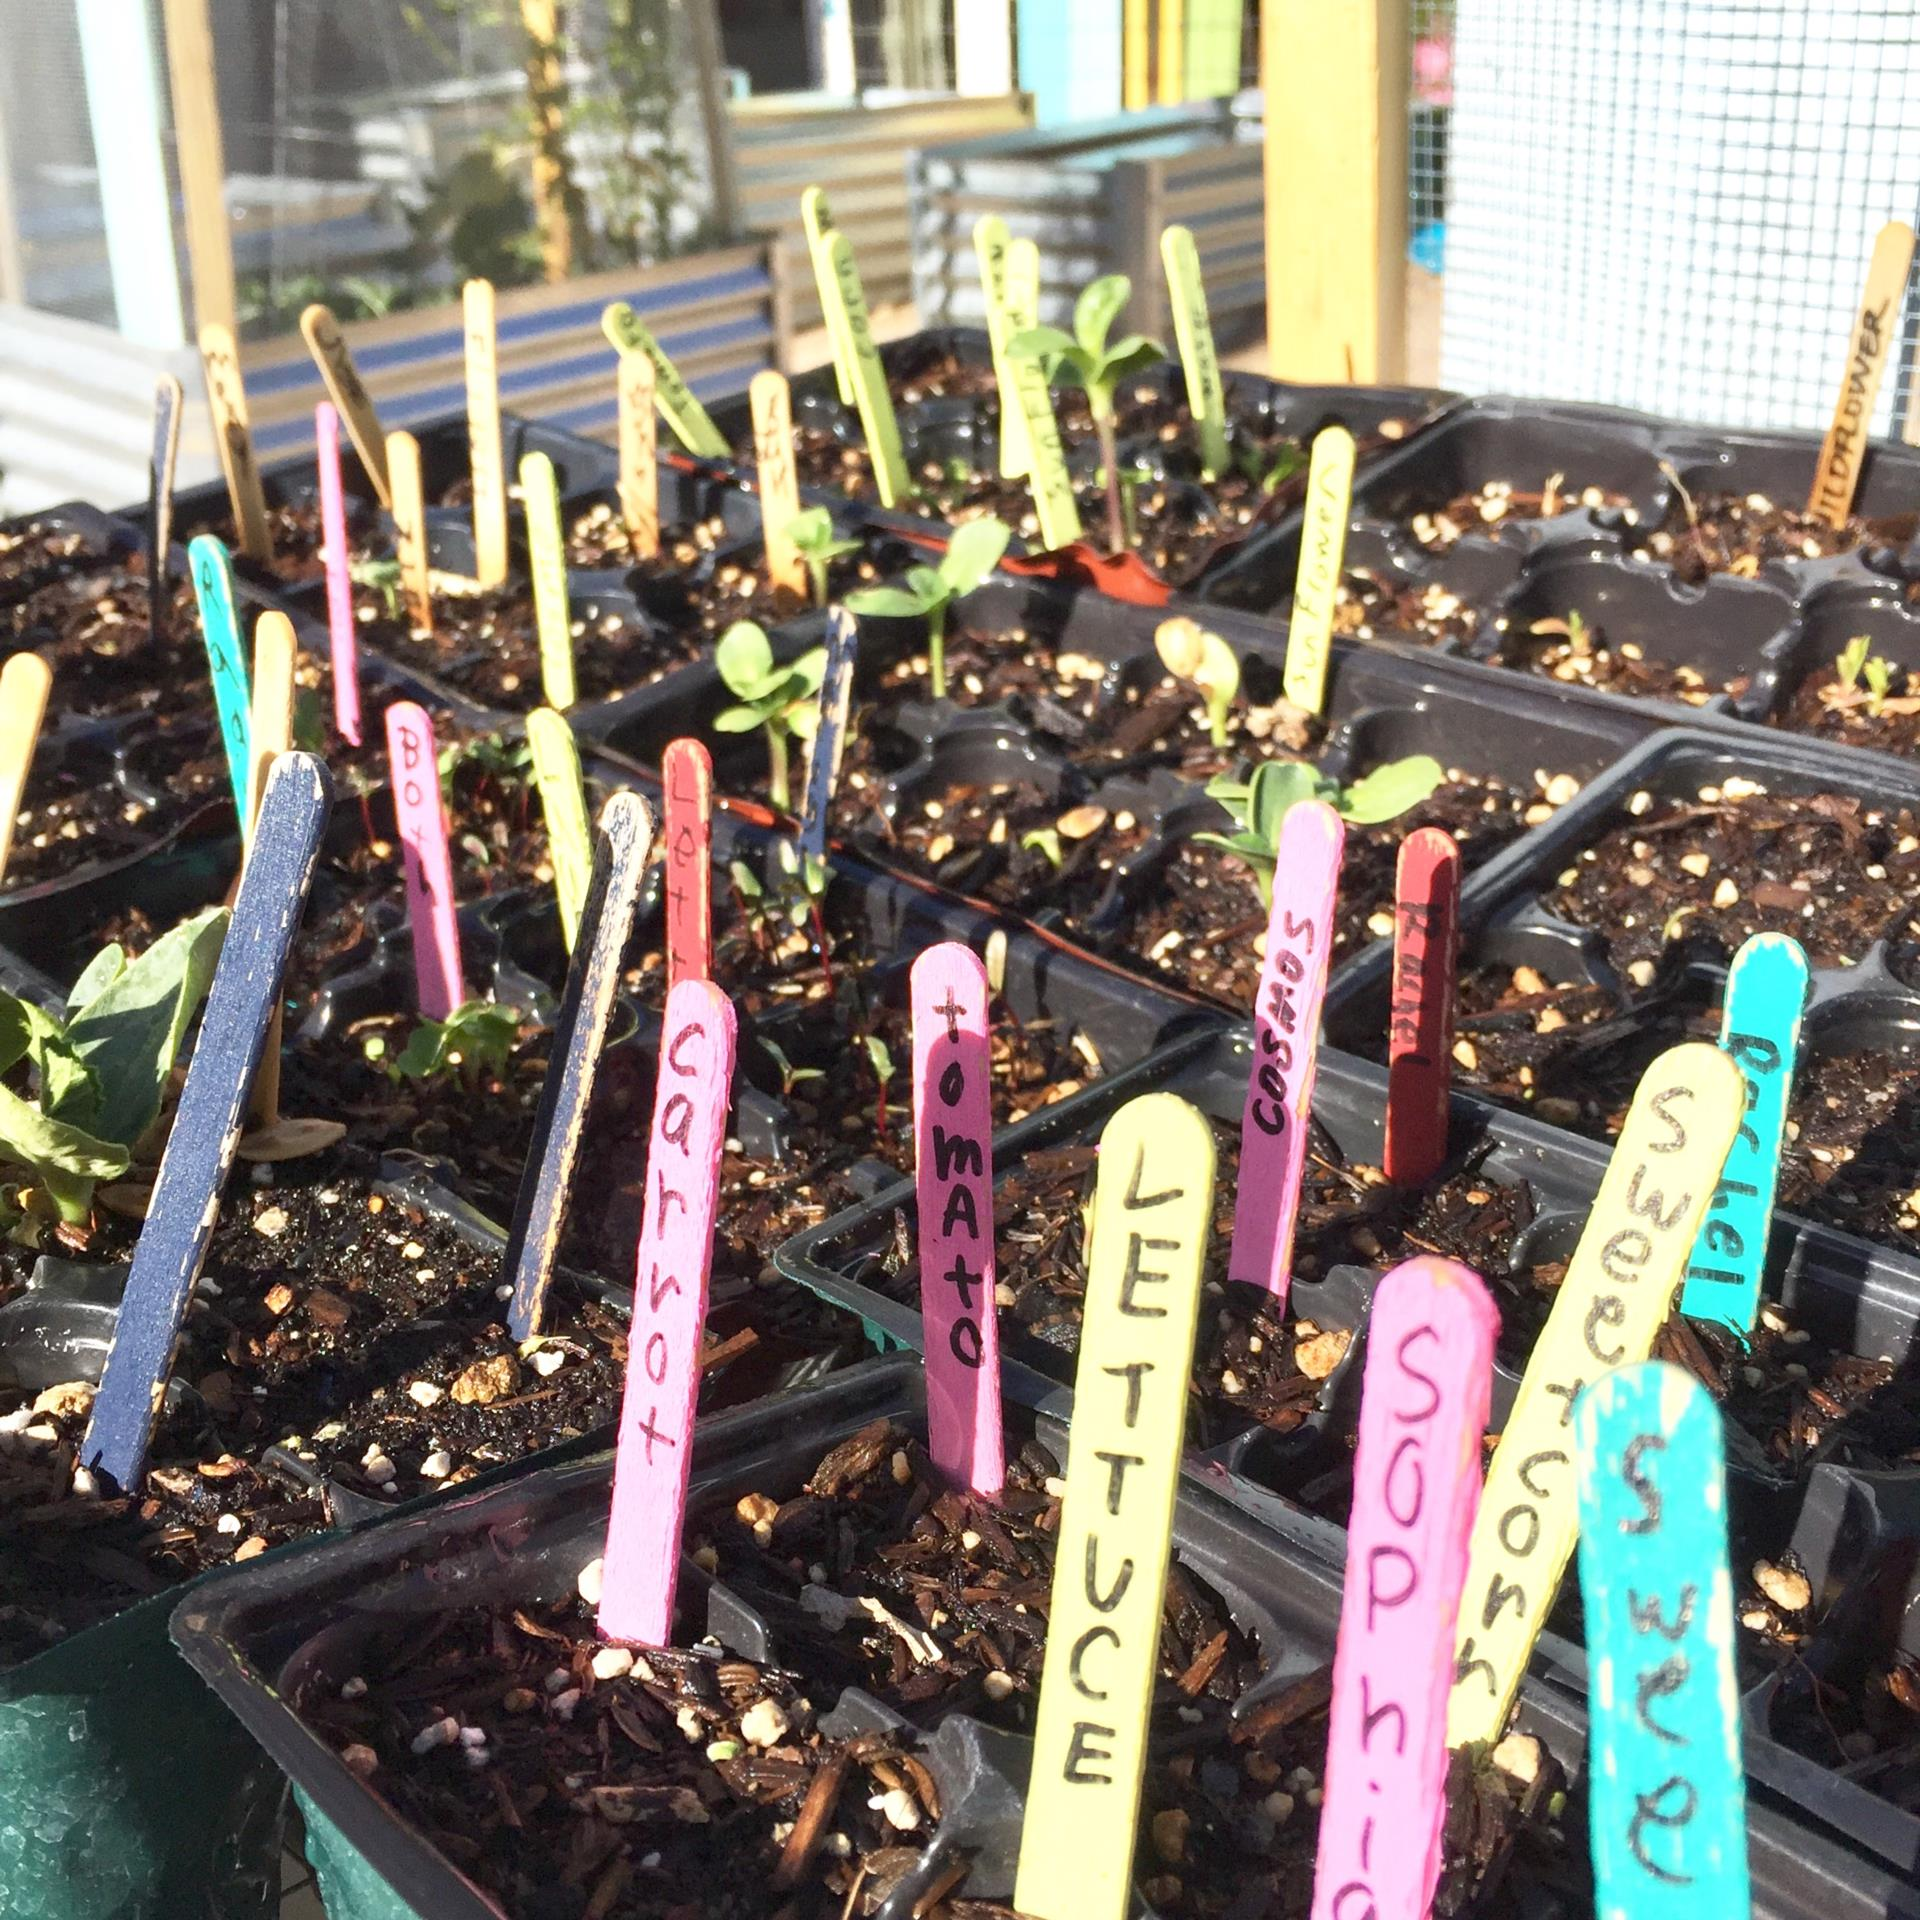 seedlings with colorful markers